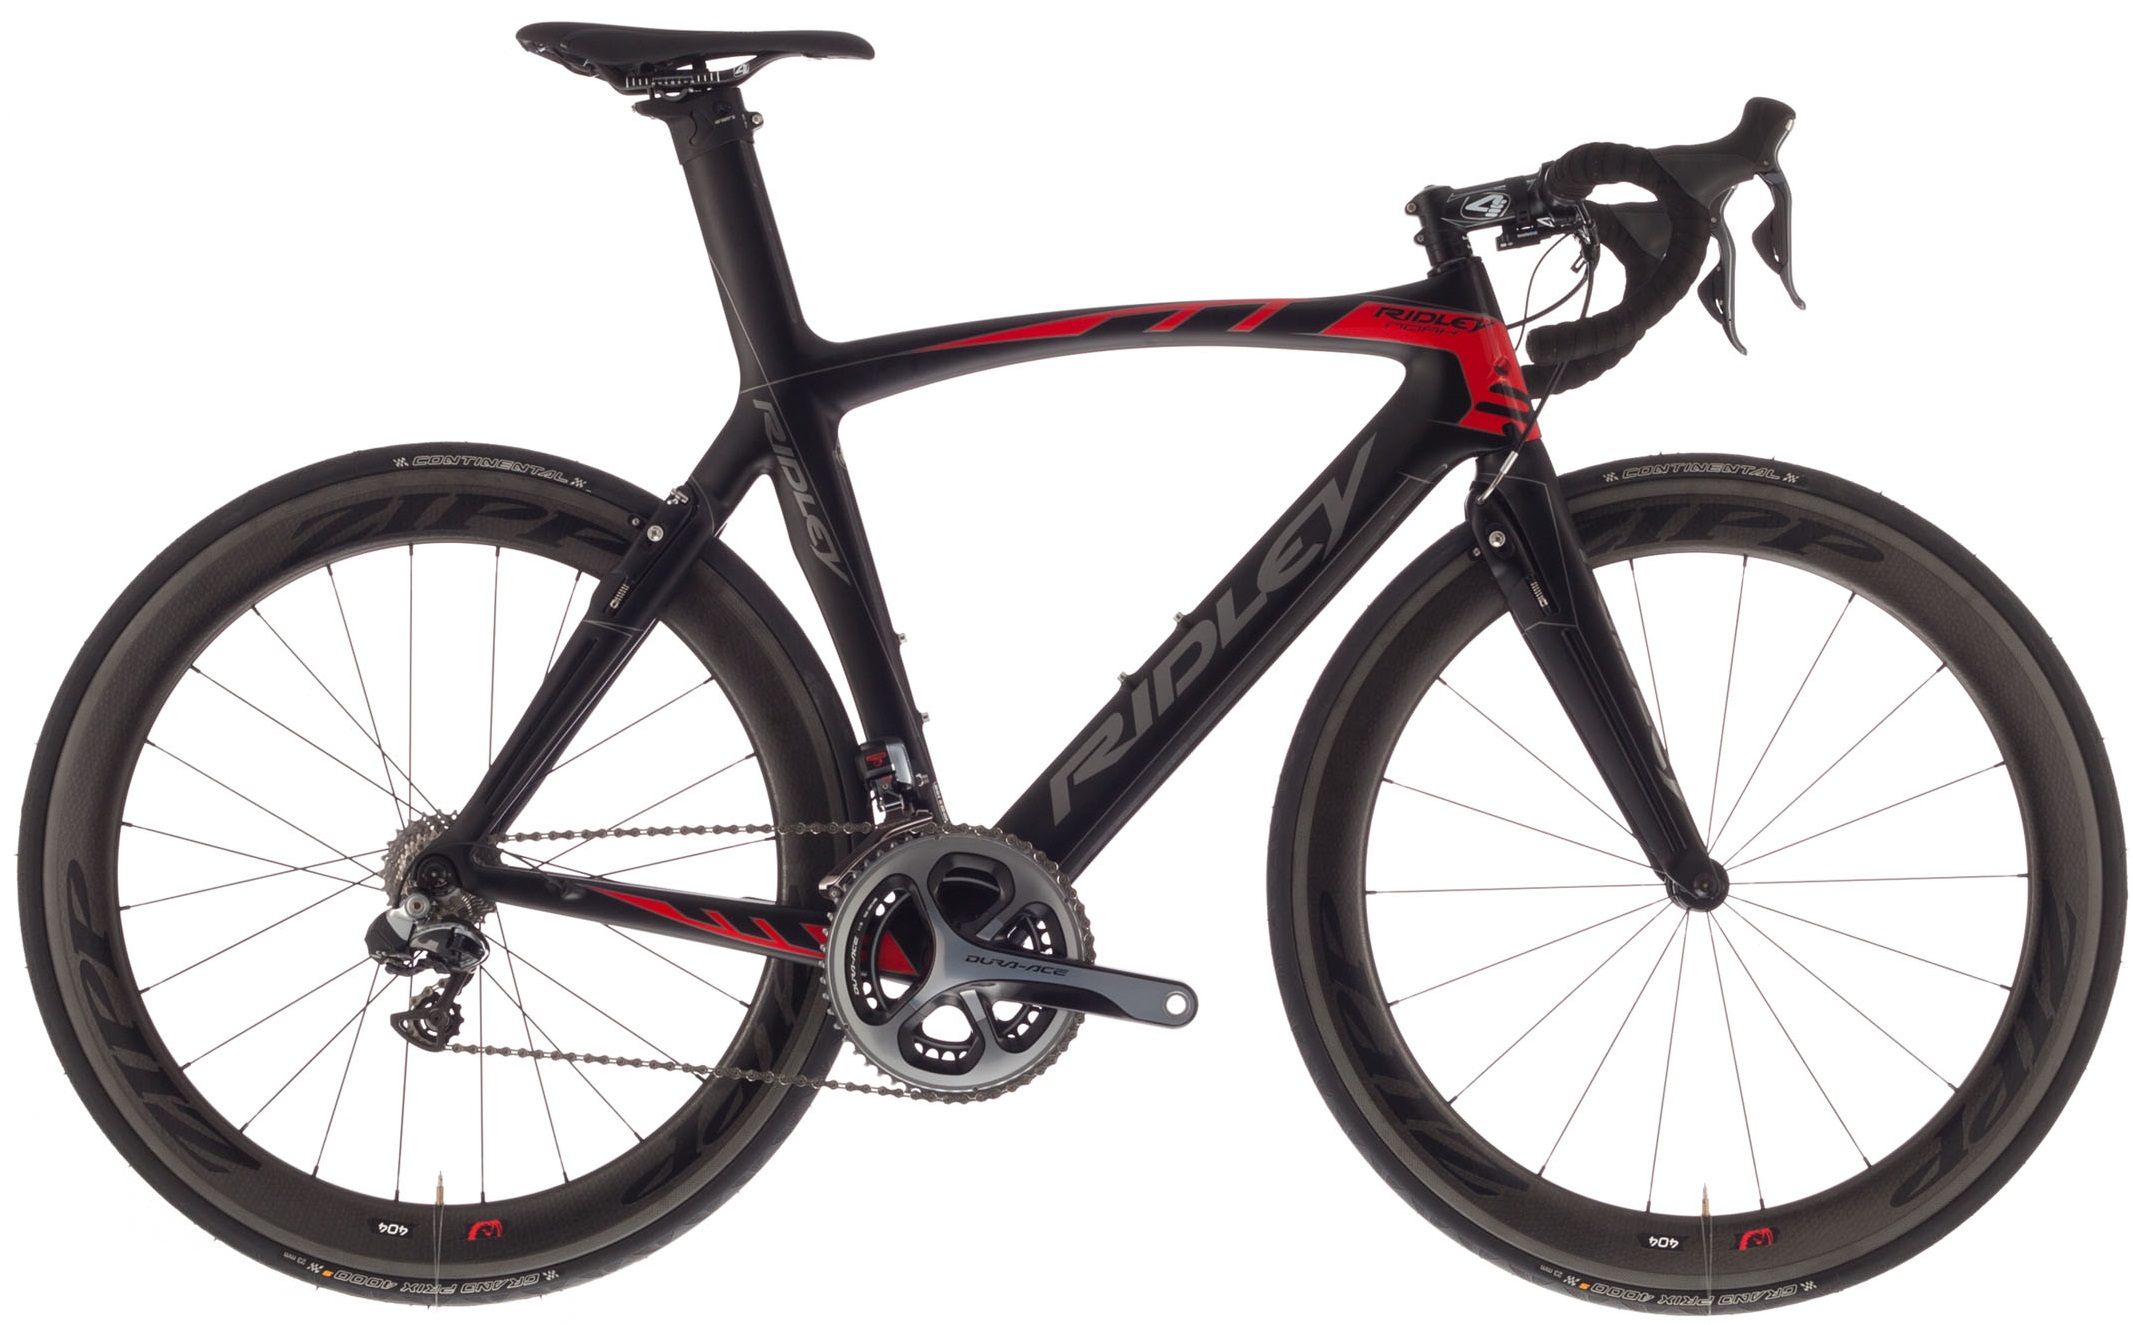 2015 Ridley Noah Fast 10 black red dura aceneuroticarnutz2015 Ridley Noah Fast 10 black red dura ace2015 Scatto King black dura ace red